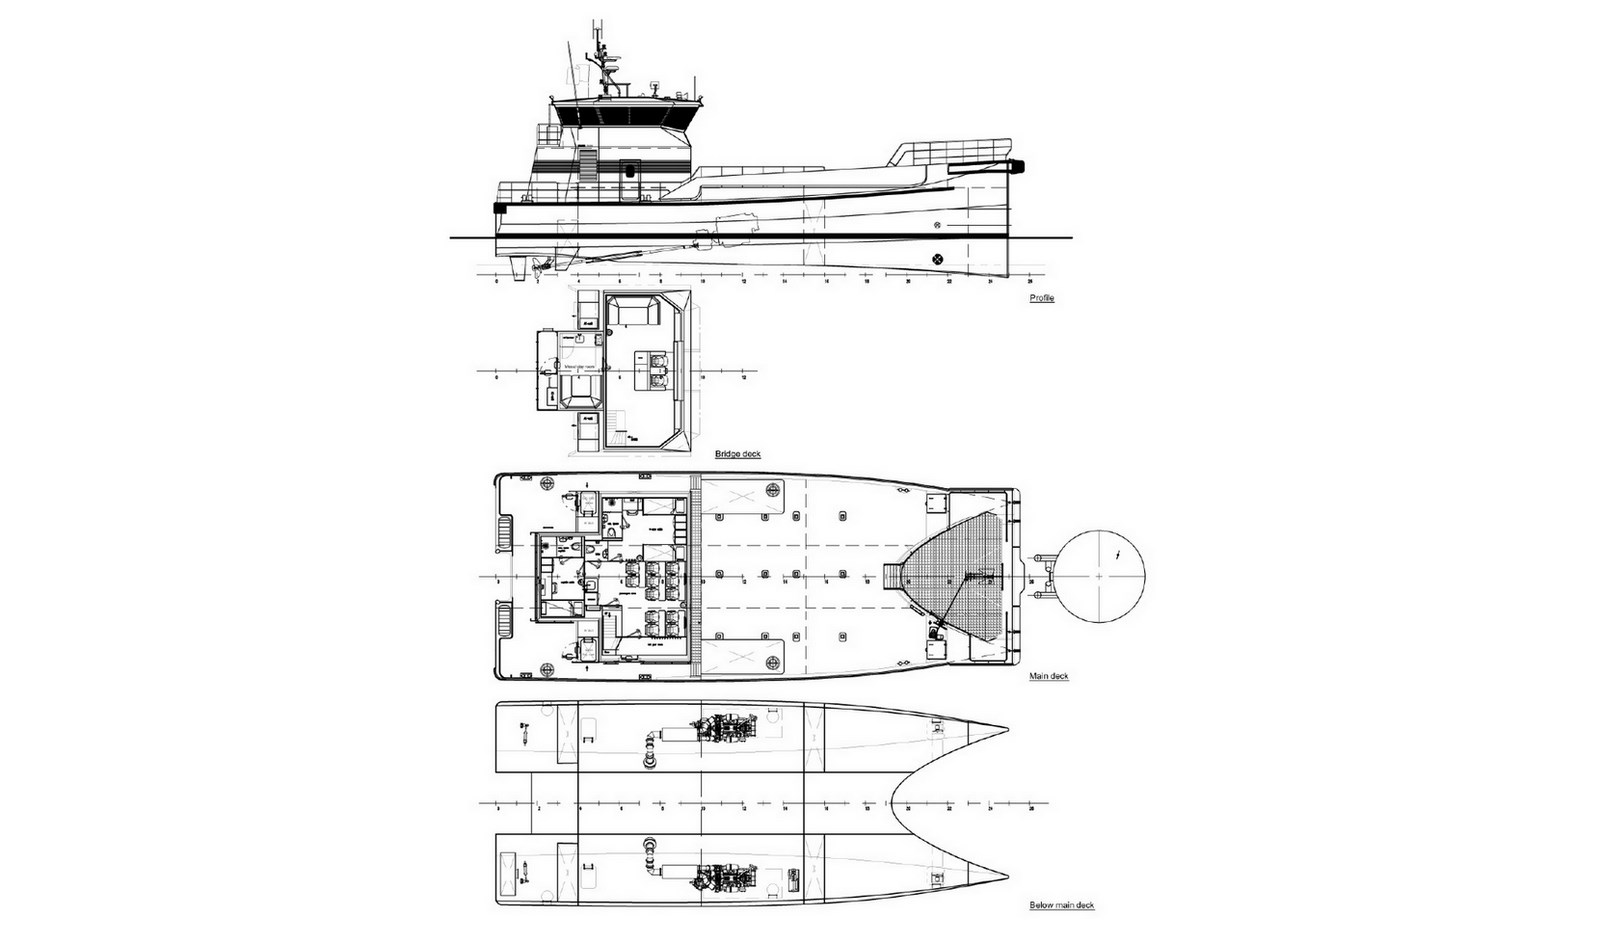 Genneral Arrangement of Damen Fast Crew Supplier 2610